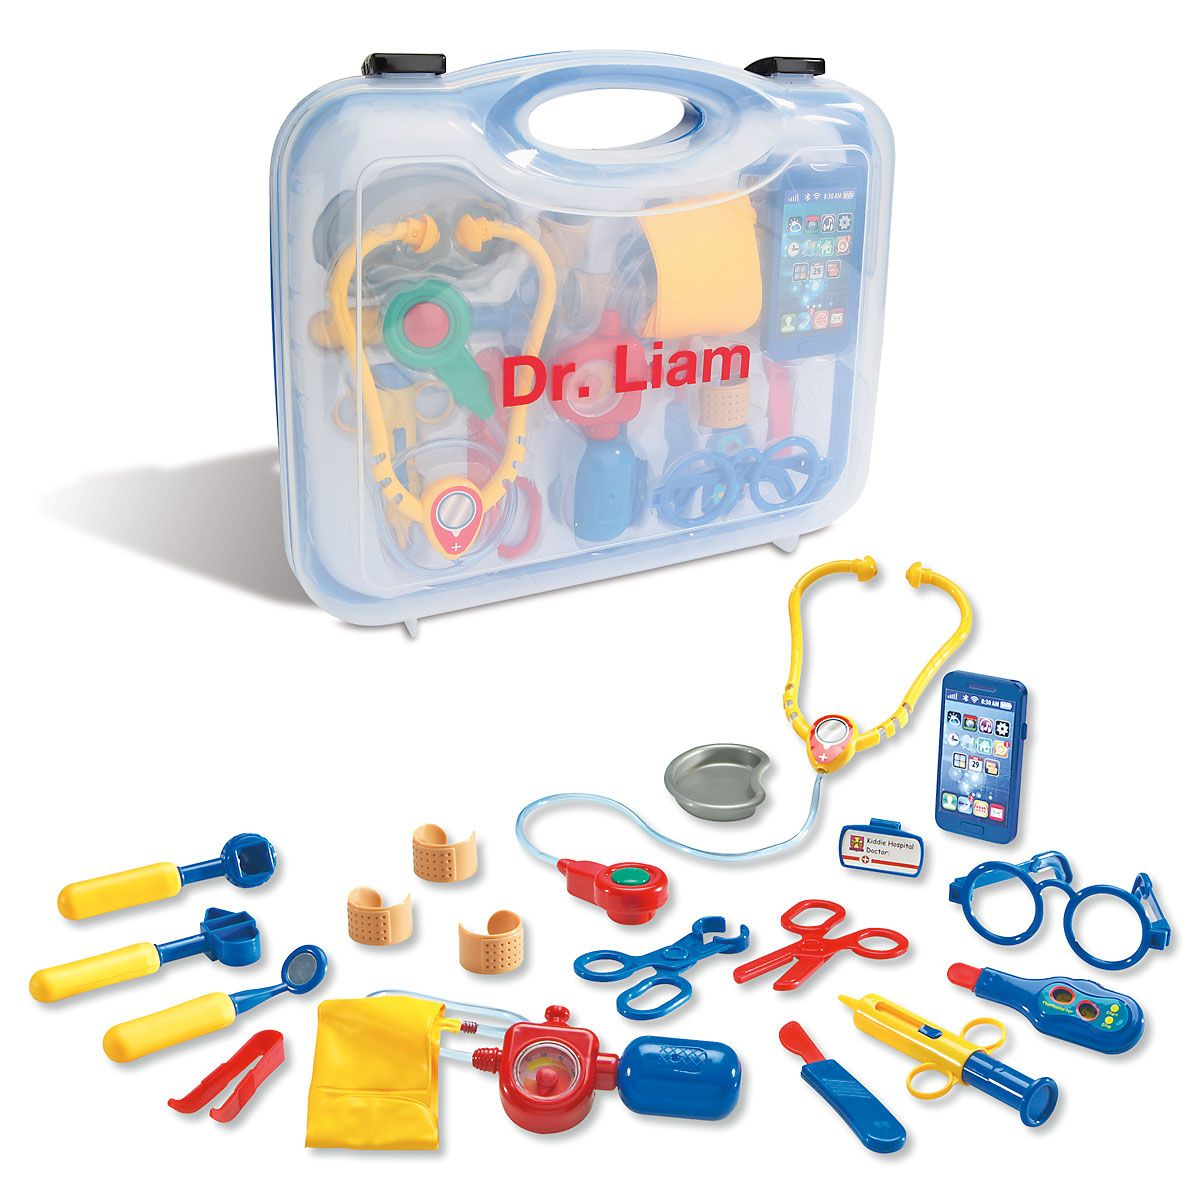 Personalized Doctor Sets